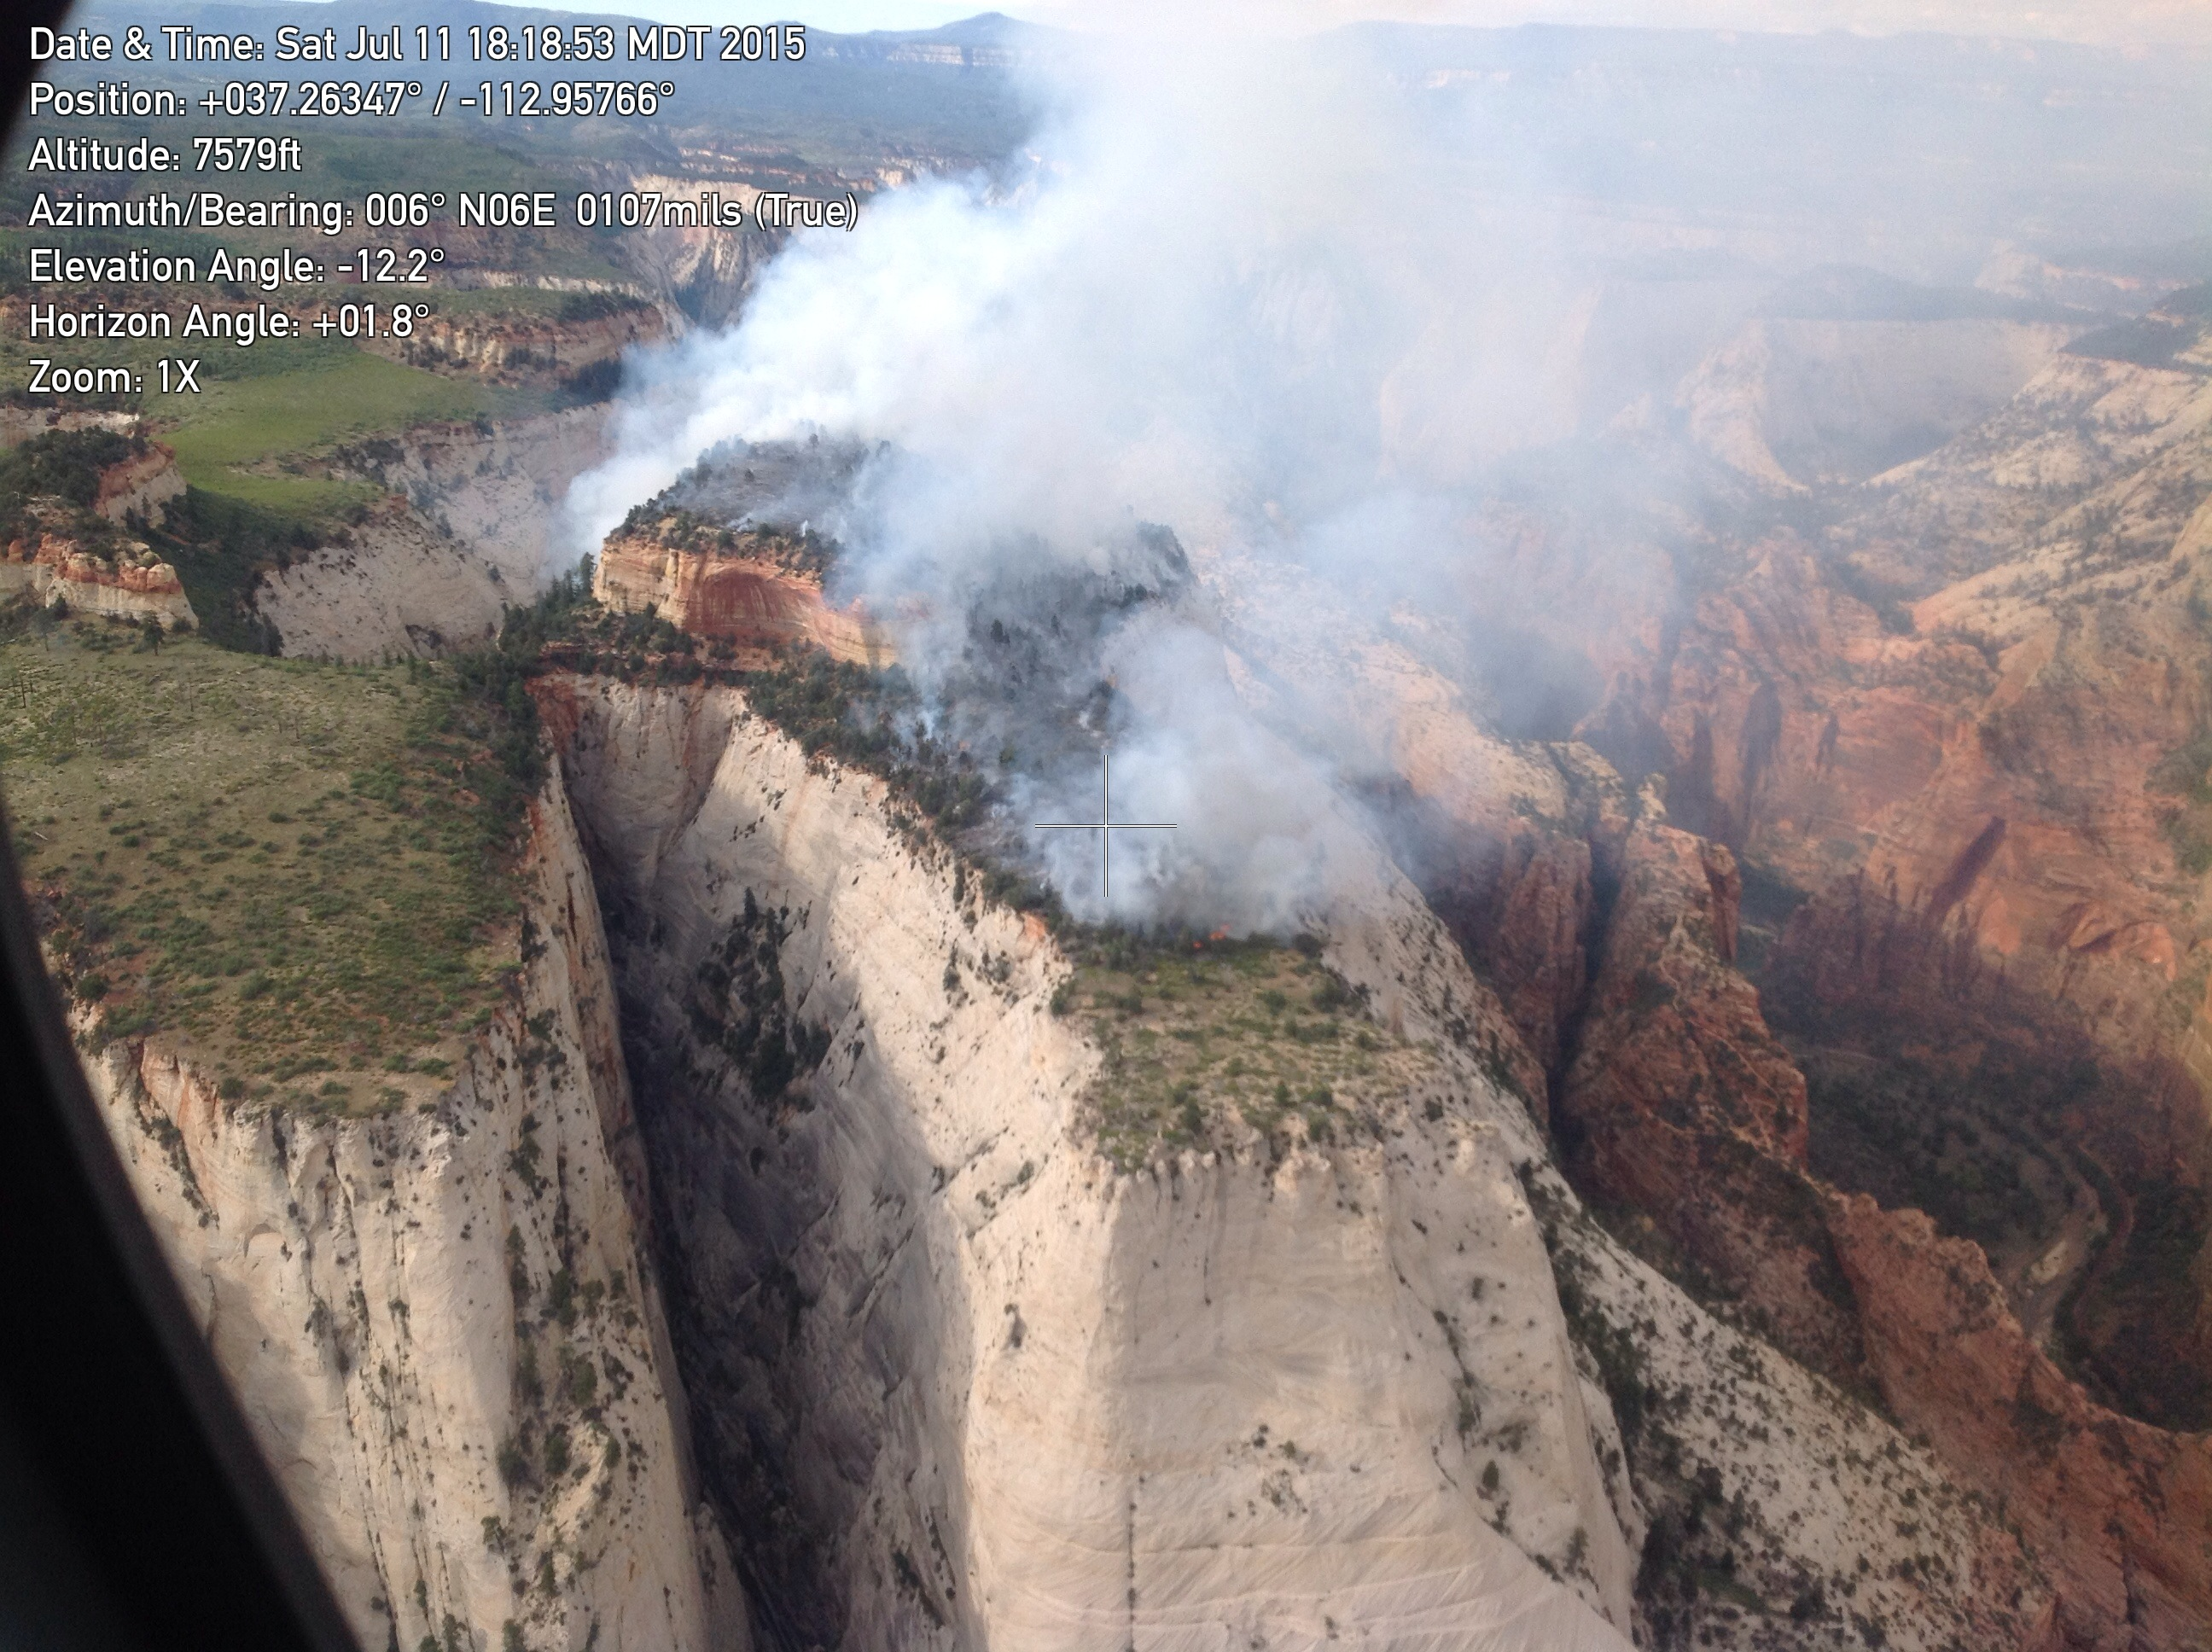 Cathedral Fire, started by lightning on July 9, in Zion National Park, Utah, July 11, 2015 | Photo courtesy of Zion National Park, St. George News